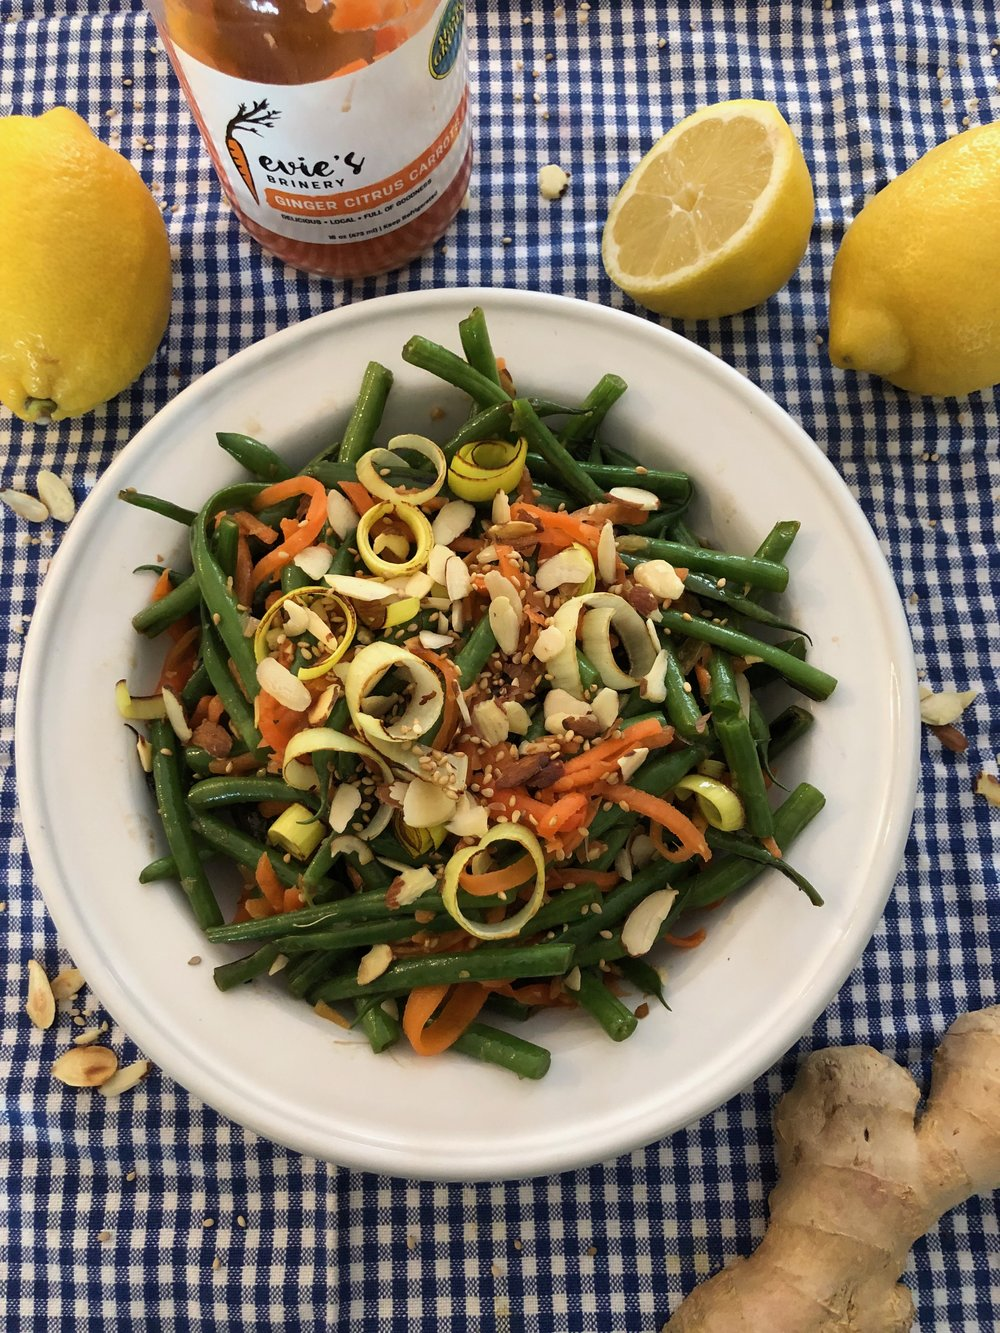 Green beans with Ginger Citrus Carrots - Lightly sauté 2 cups green beans and 1/2 cup sliced leeks in 3-4 Tablespoons toasted sesame oil (add a little garlic if you like), cool, then toss with 1 cup Ginger Citrus Carrots & lemon zest. Top with lightly toasted slivered almonds & sesame seeds. Delicious and so easy!